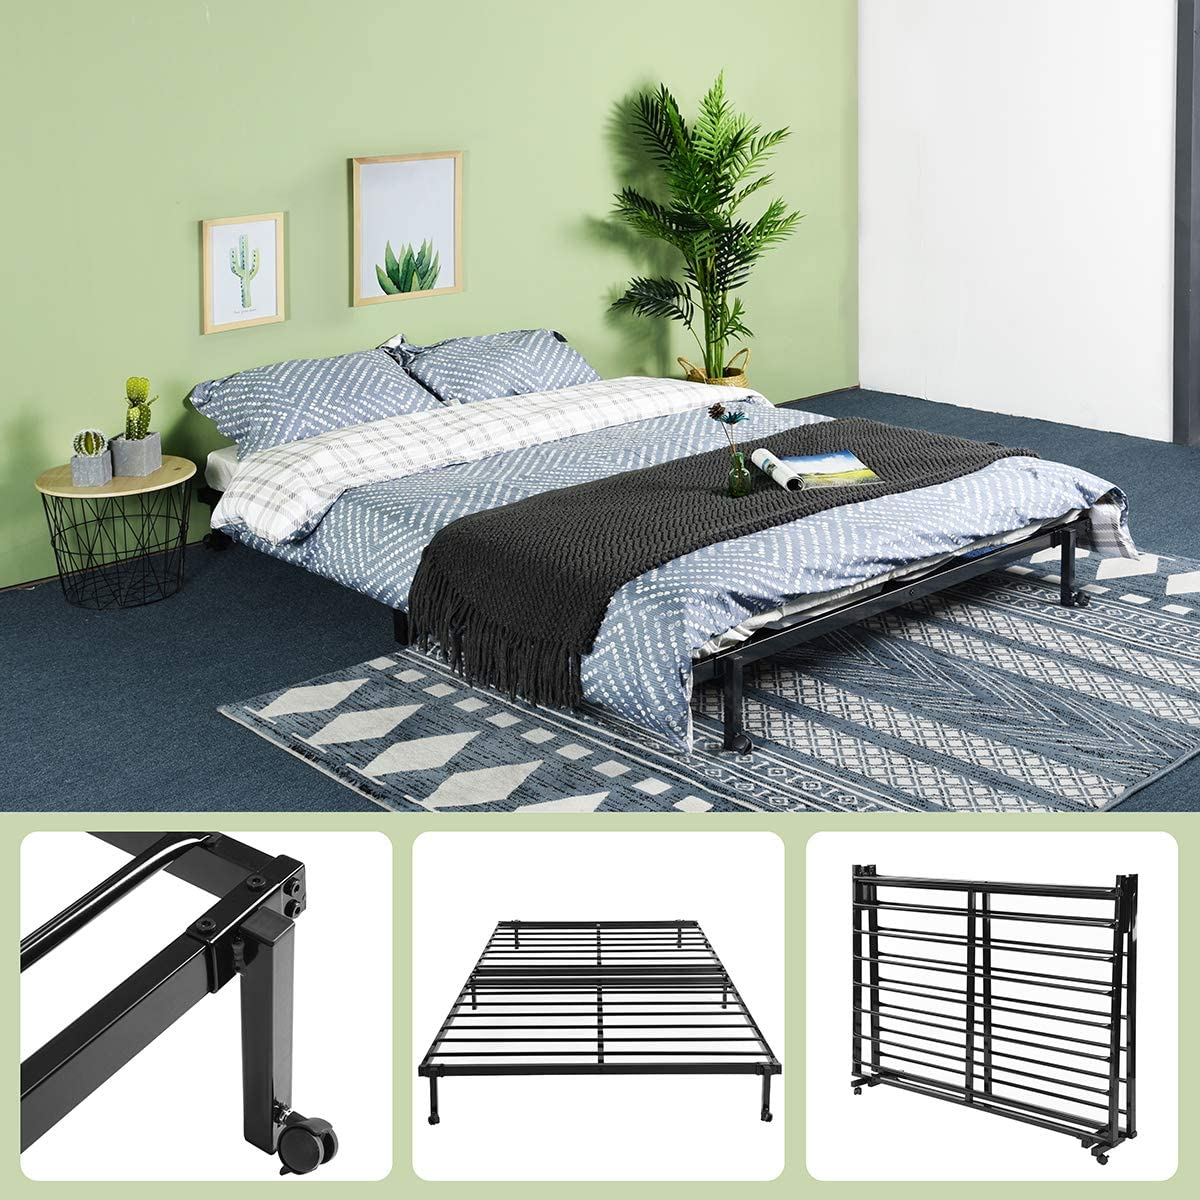 - GreenForest Folding Double Bed Frame Stable Metal Slats Boxspring  Replacement Full Size Platform Mattress Base With Wheels, Black: Amazon.ca:  Home & Kitchen